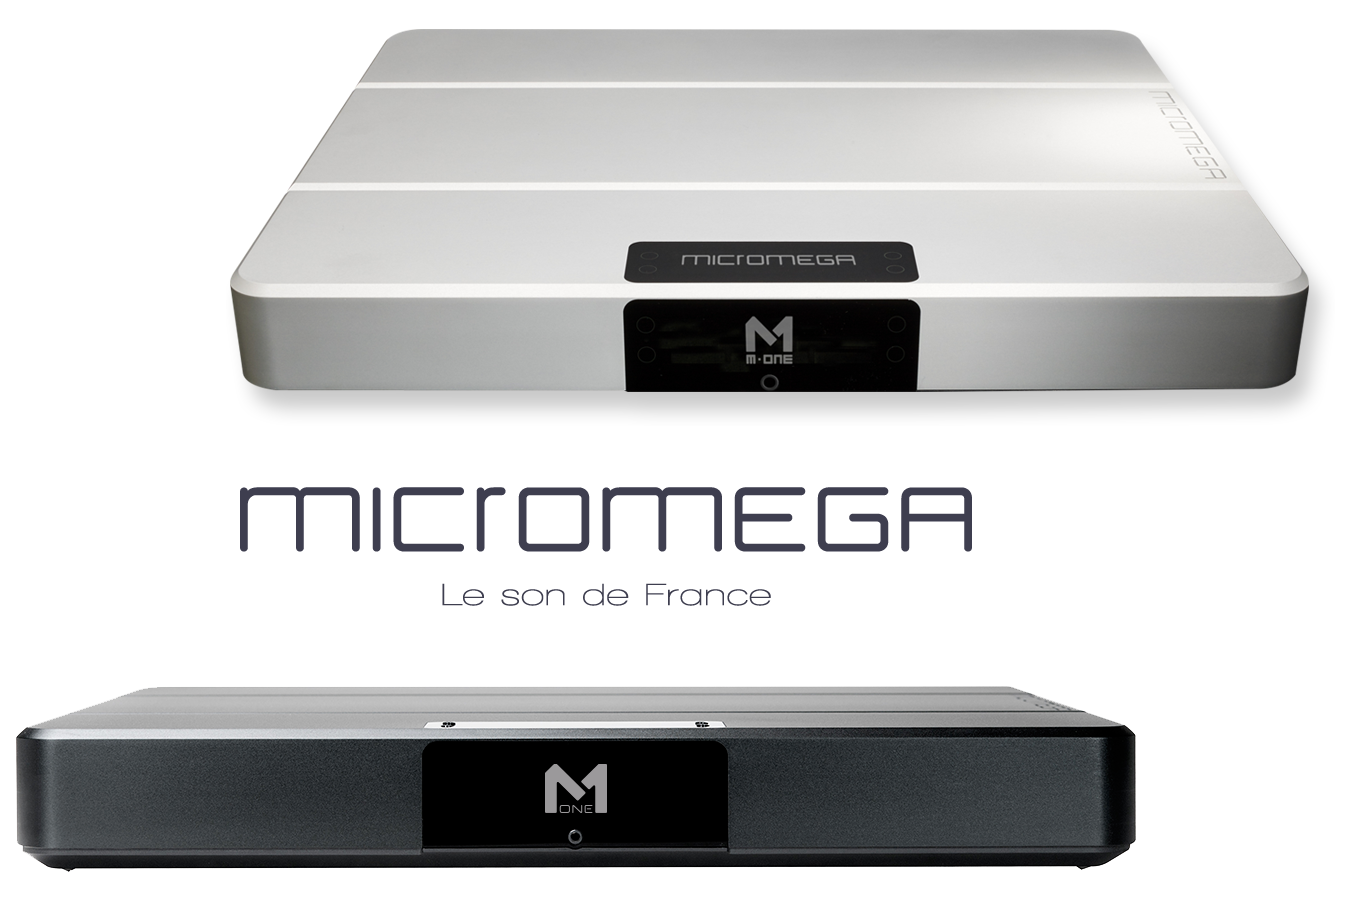 Den Micromega M ONE Verstärker-Player & Streaming Lösung kauft man beim AkustikTune Hifi Studio